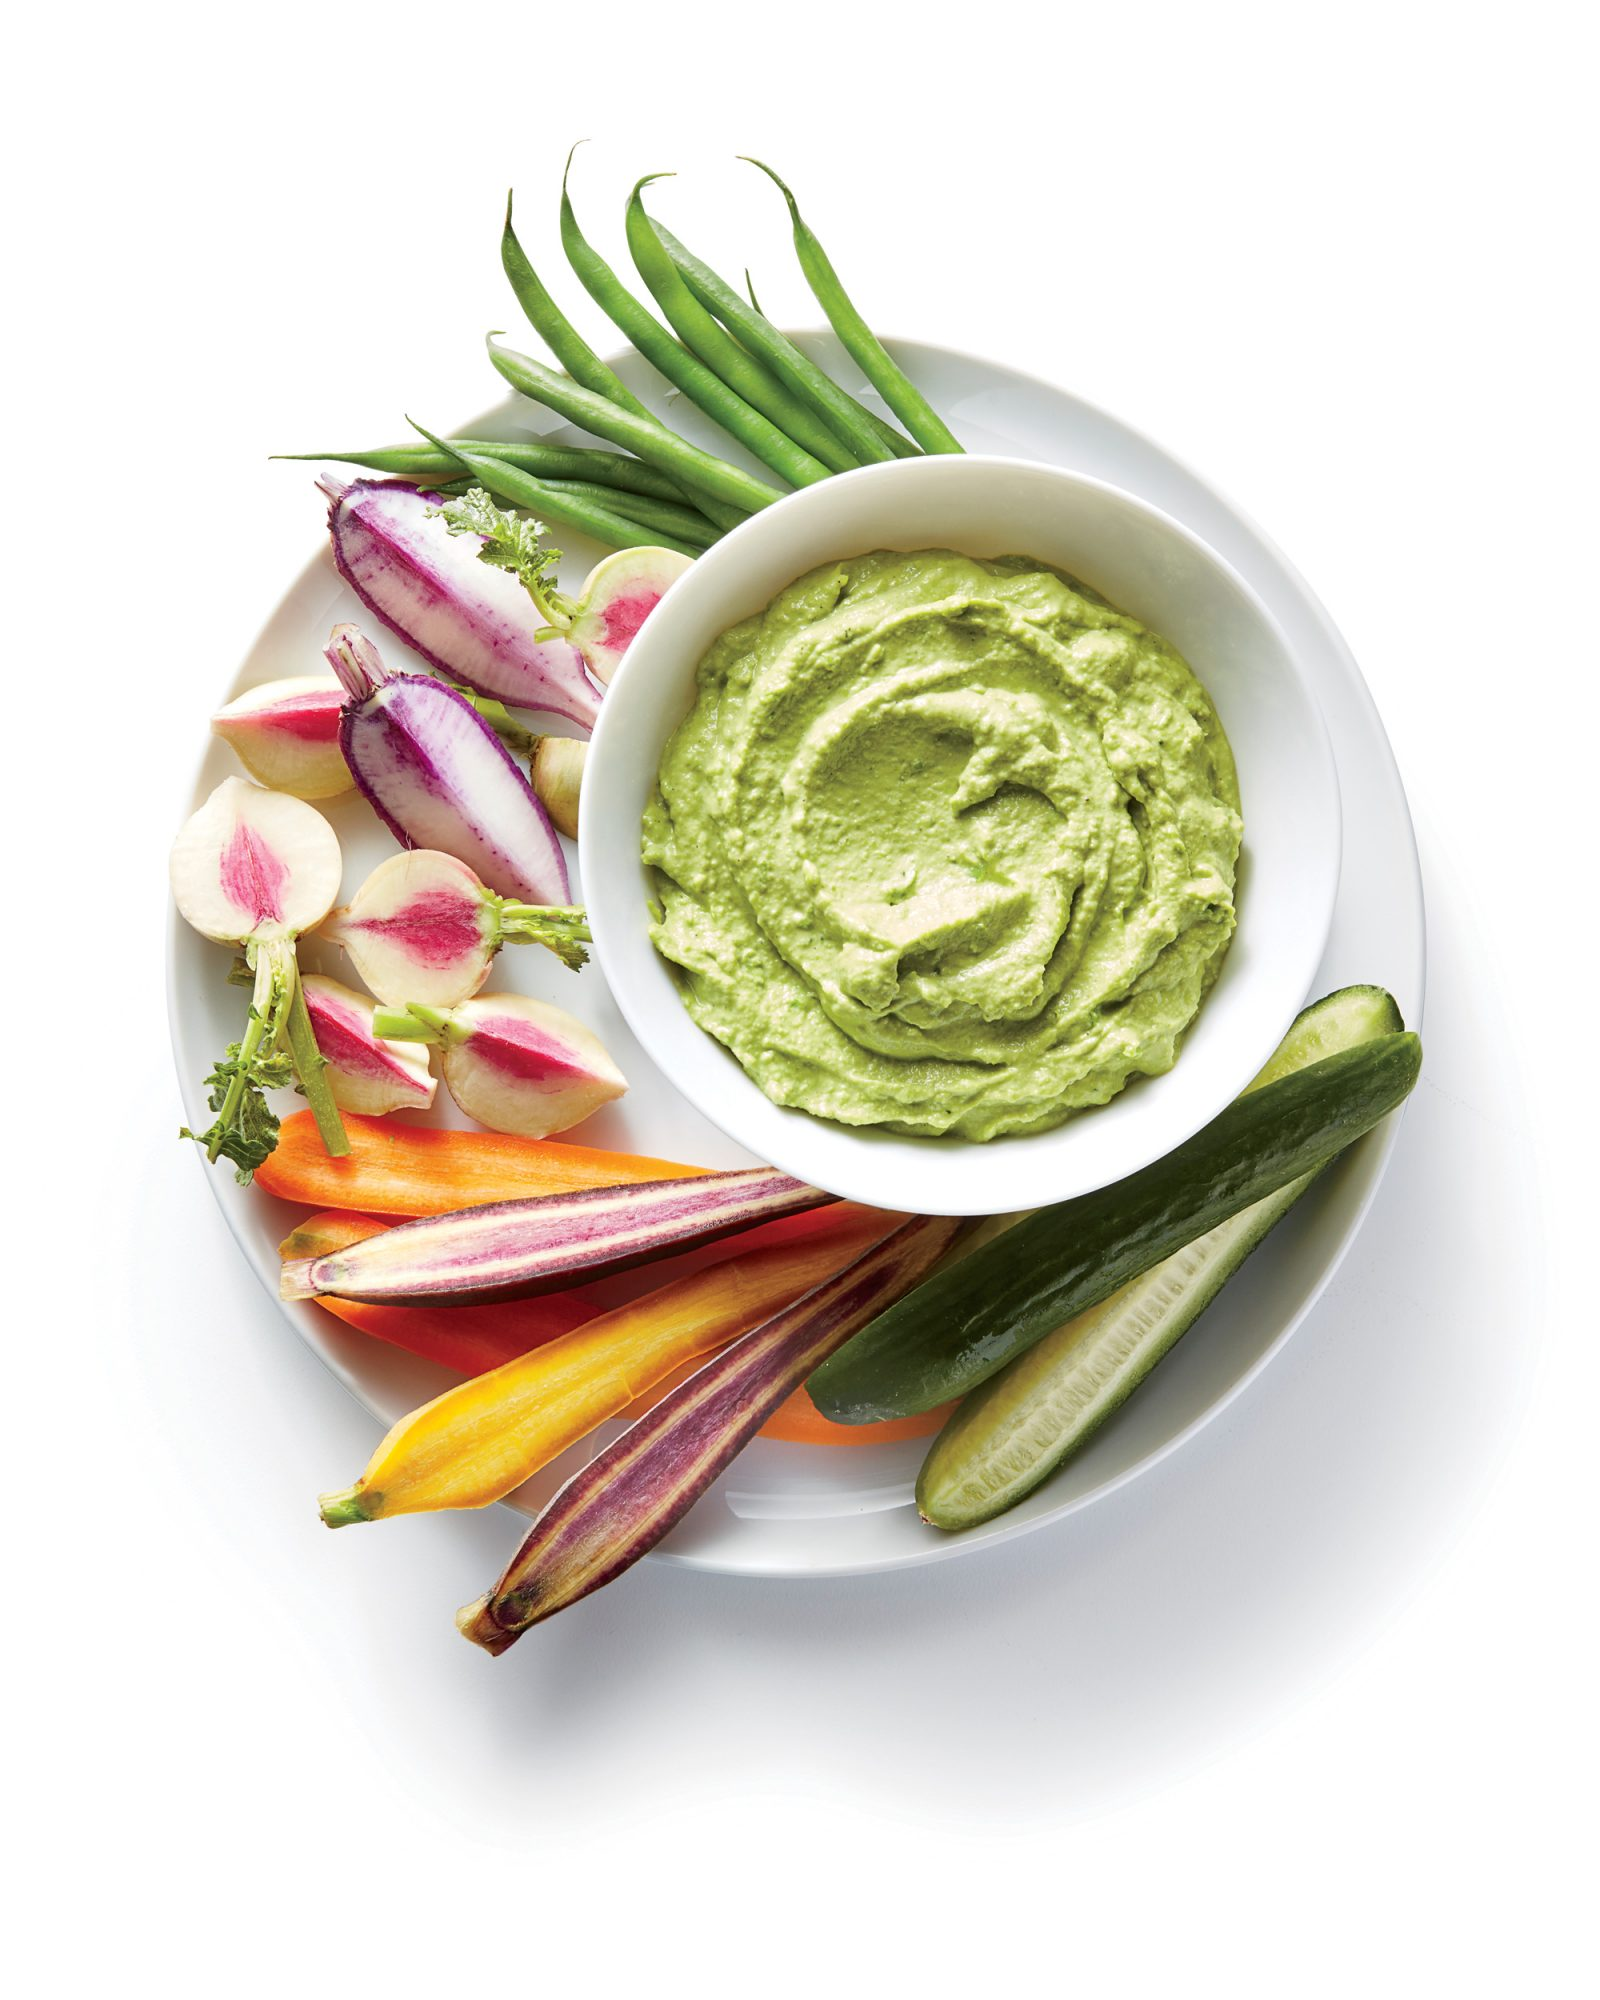 <p>Green Pea and Parsley Hummus</p>